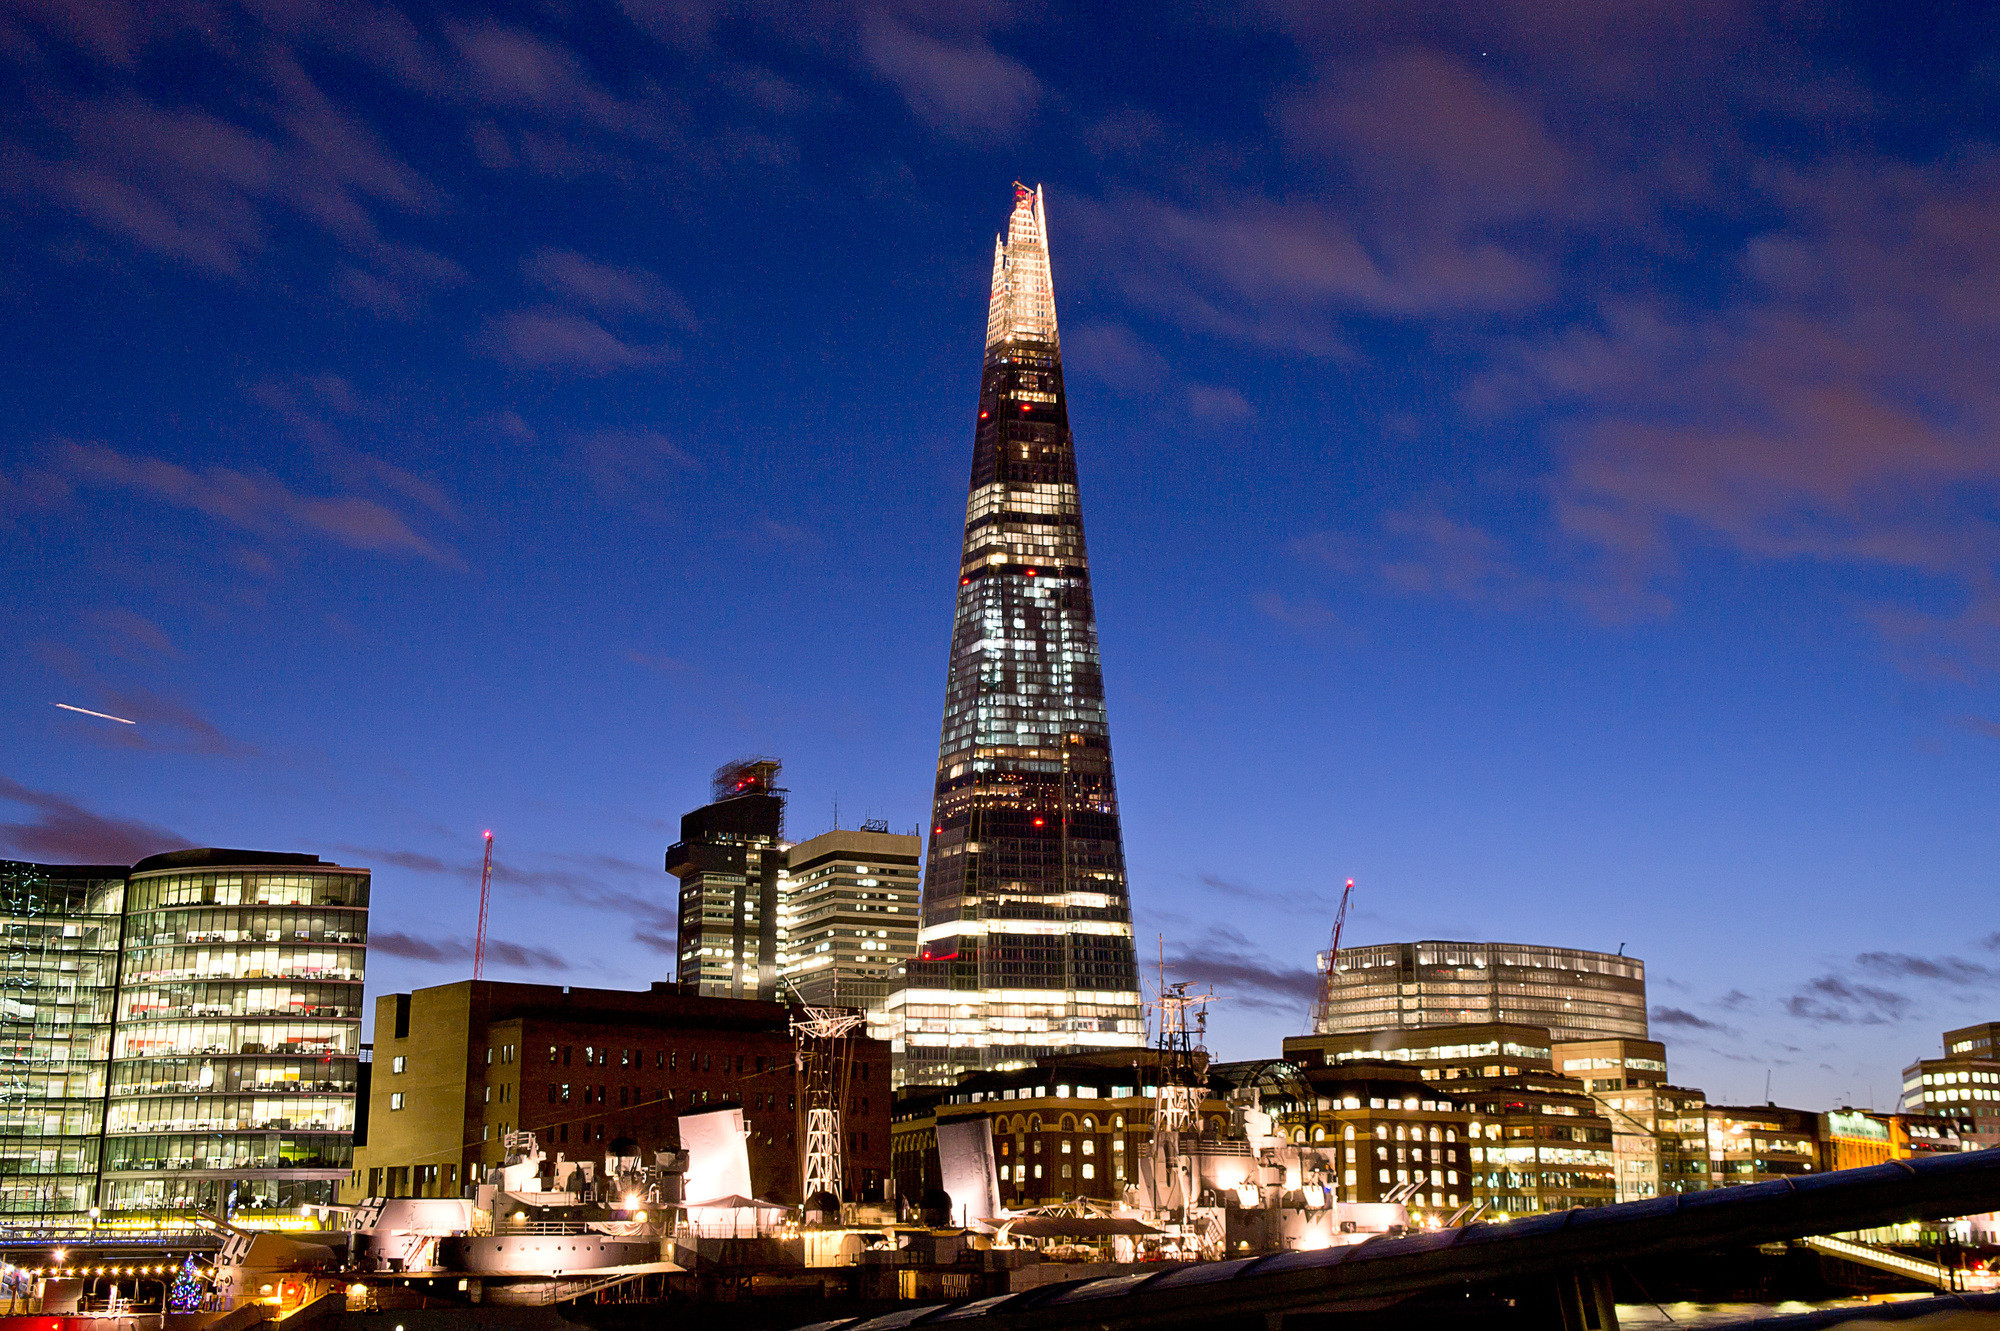 UK Government Confirms Protection of Title Will Continue, One of the more embarrassing examples of the ARB's 'mission creep' which the review may address came in 2012, when they demanded that media organizations cease to refer to Renzo Piano, designer of the Shard, as an architect. Image © Eric Smerling